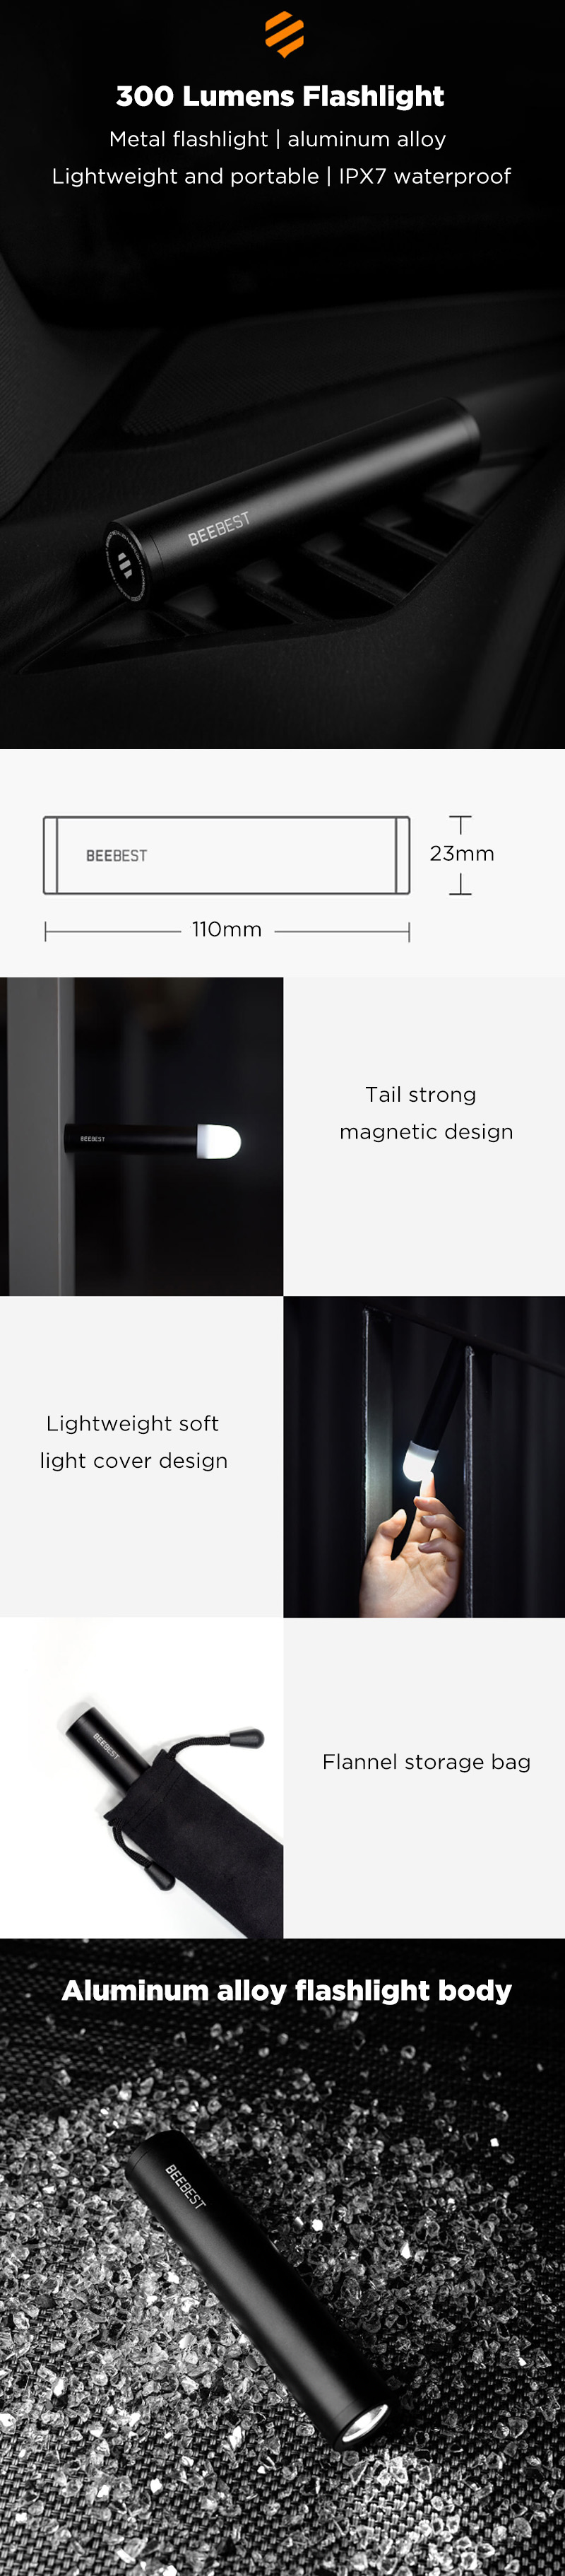 BEEBEST F300 Rechargeable Flashlight Power Bank From XIAOMI Youpin